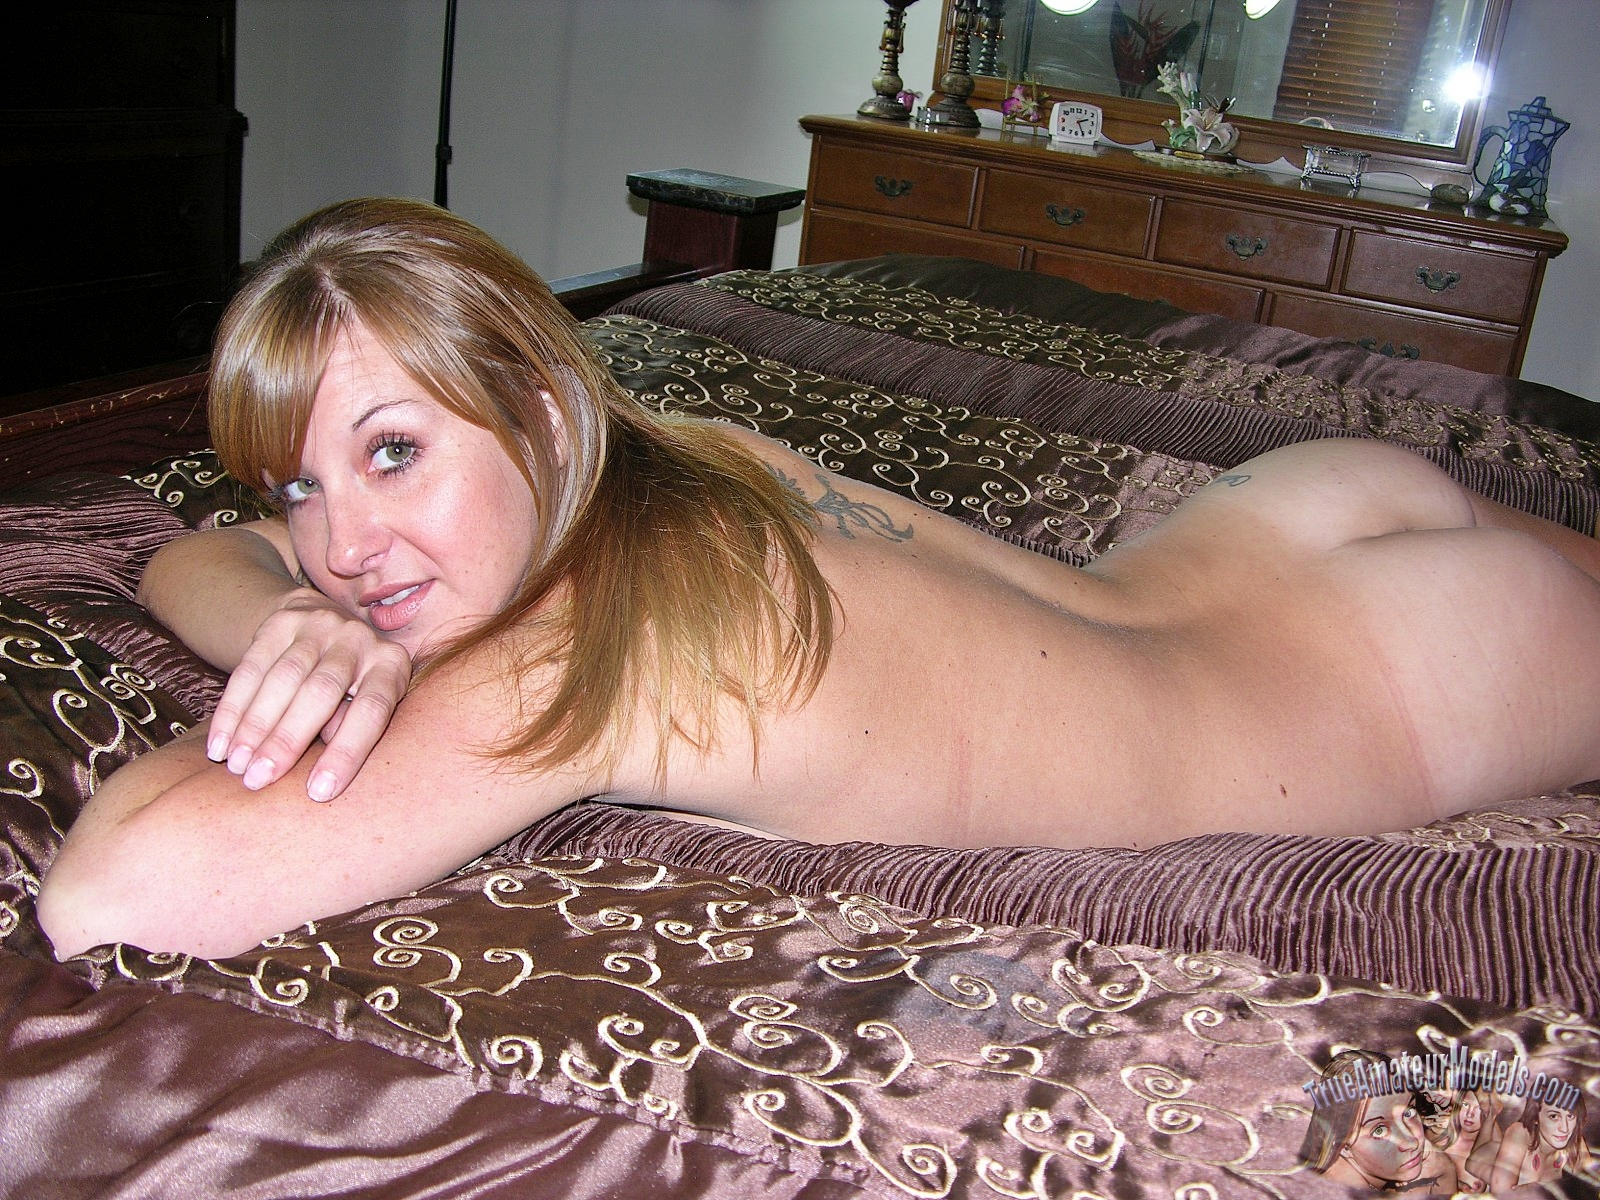 Apologise, but, instant nude amateur pics are